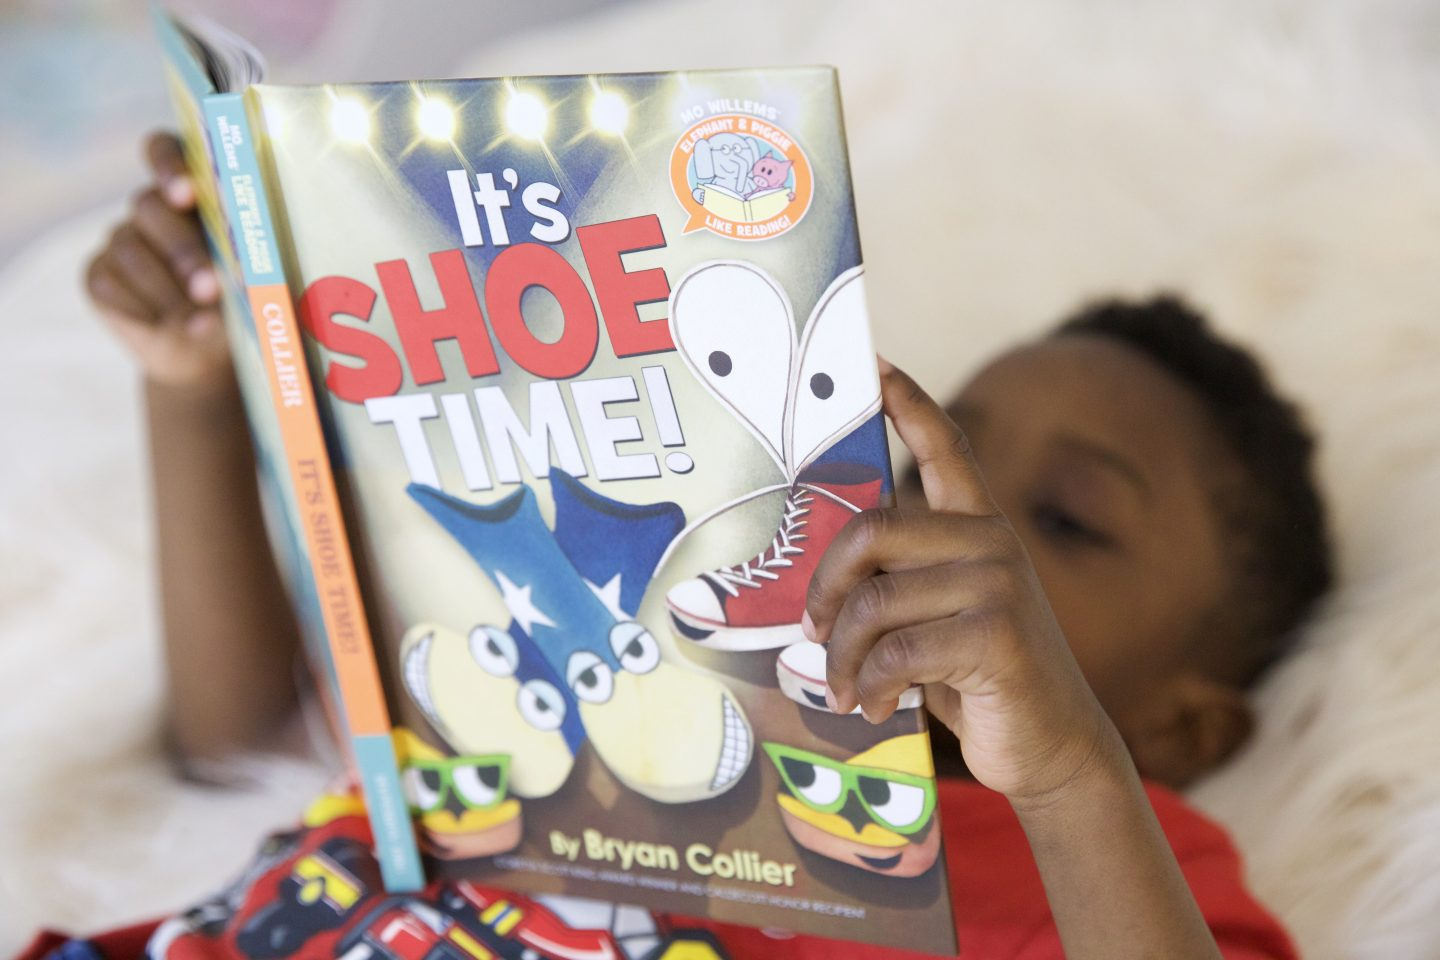 It's Shoe Time! Time to Learn to Tie Shoelaces